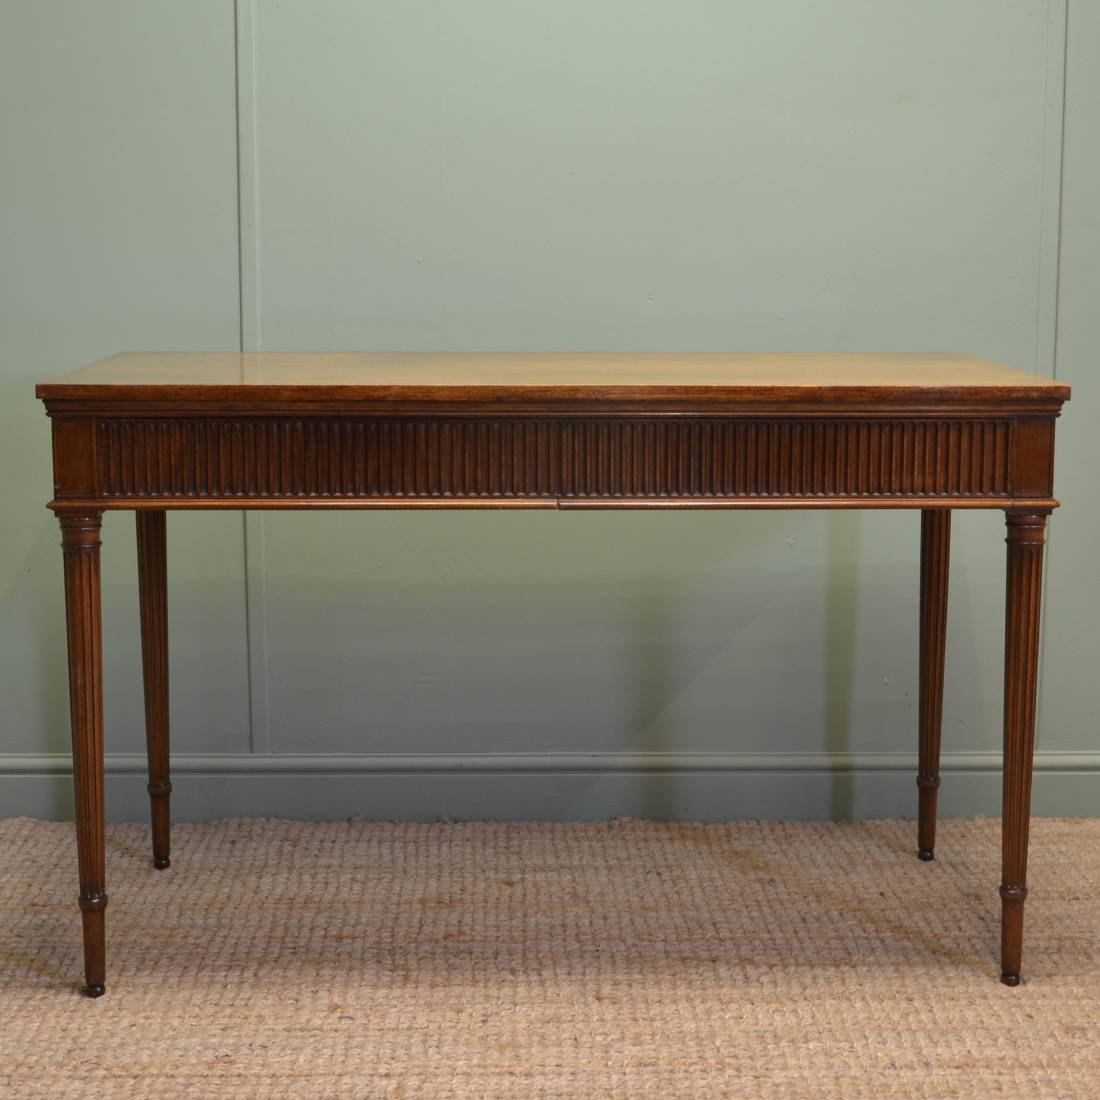 Unusual Howard And Sons Antique Mahogany Edwardian Console / Side Table